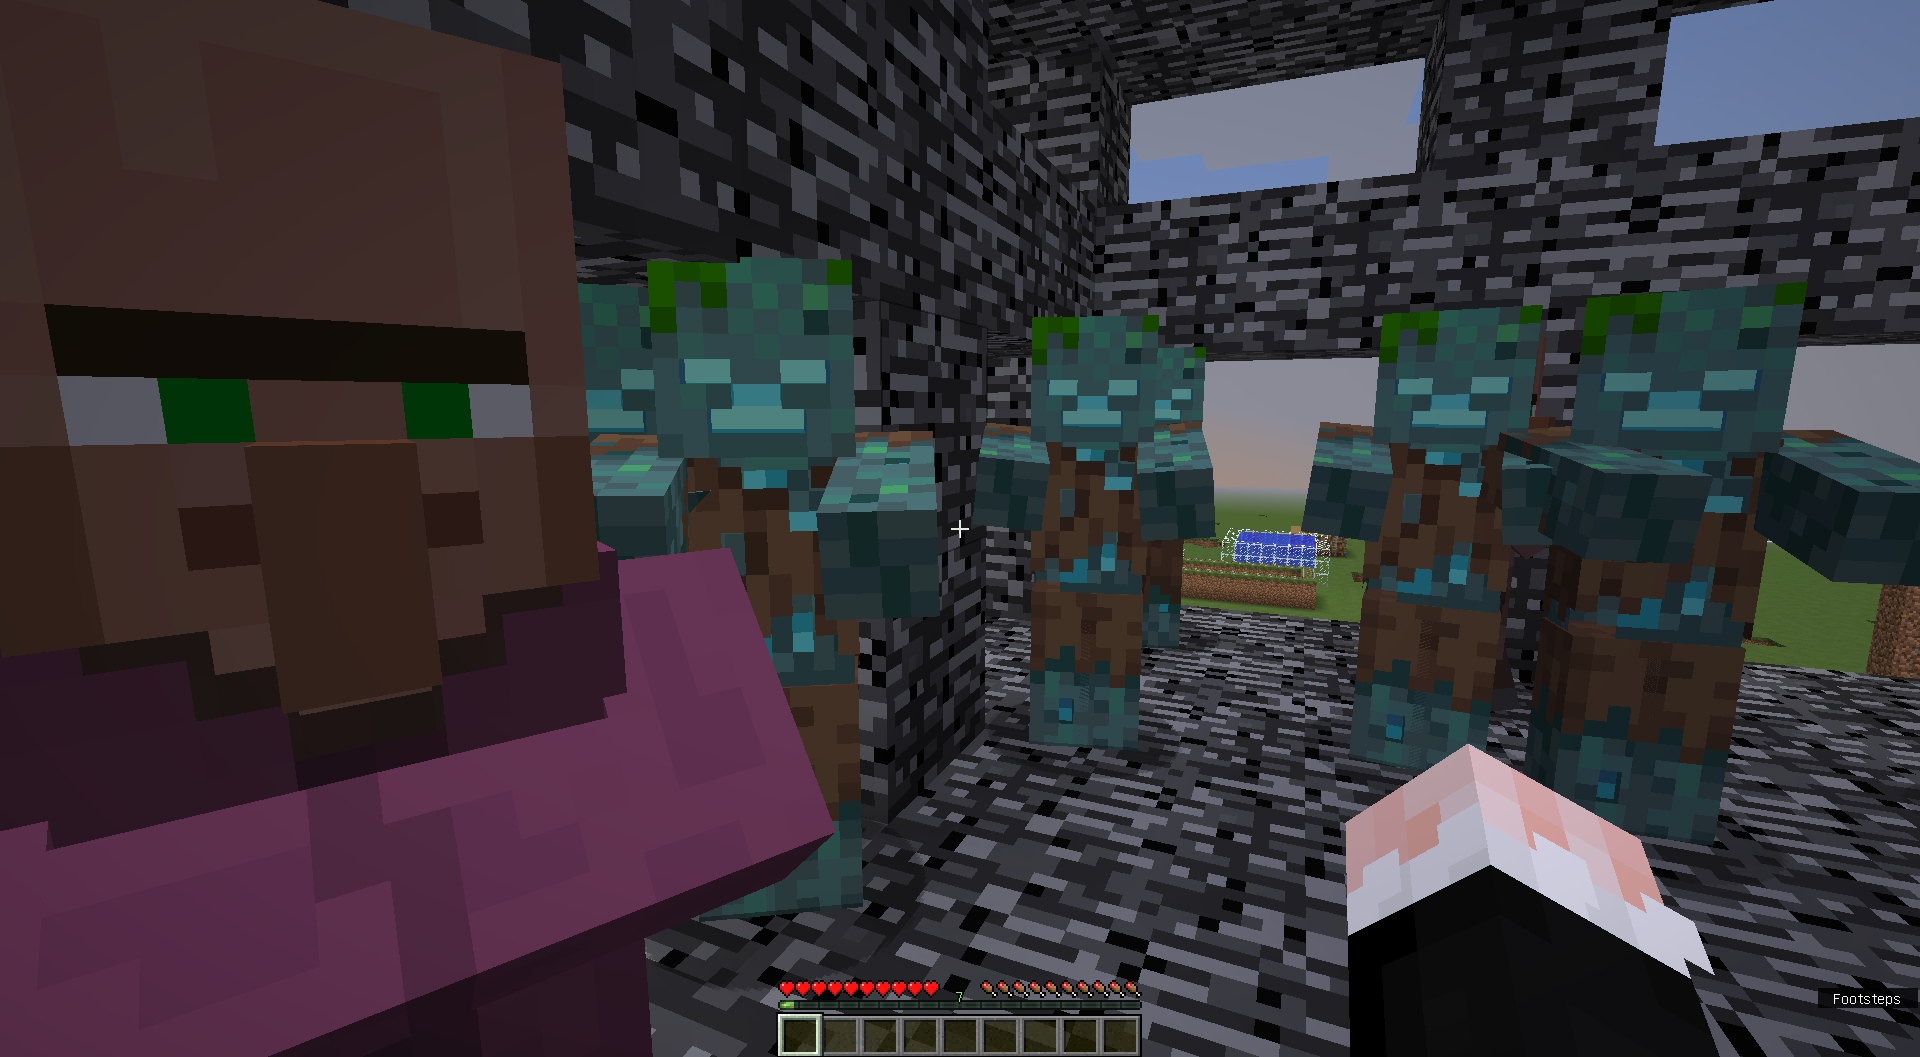 MC-127247] Unarmed drowned by spawn egg / command to spawn